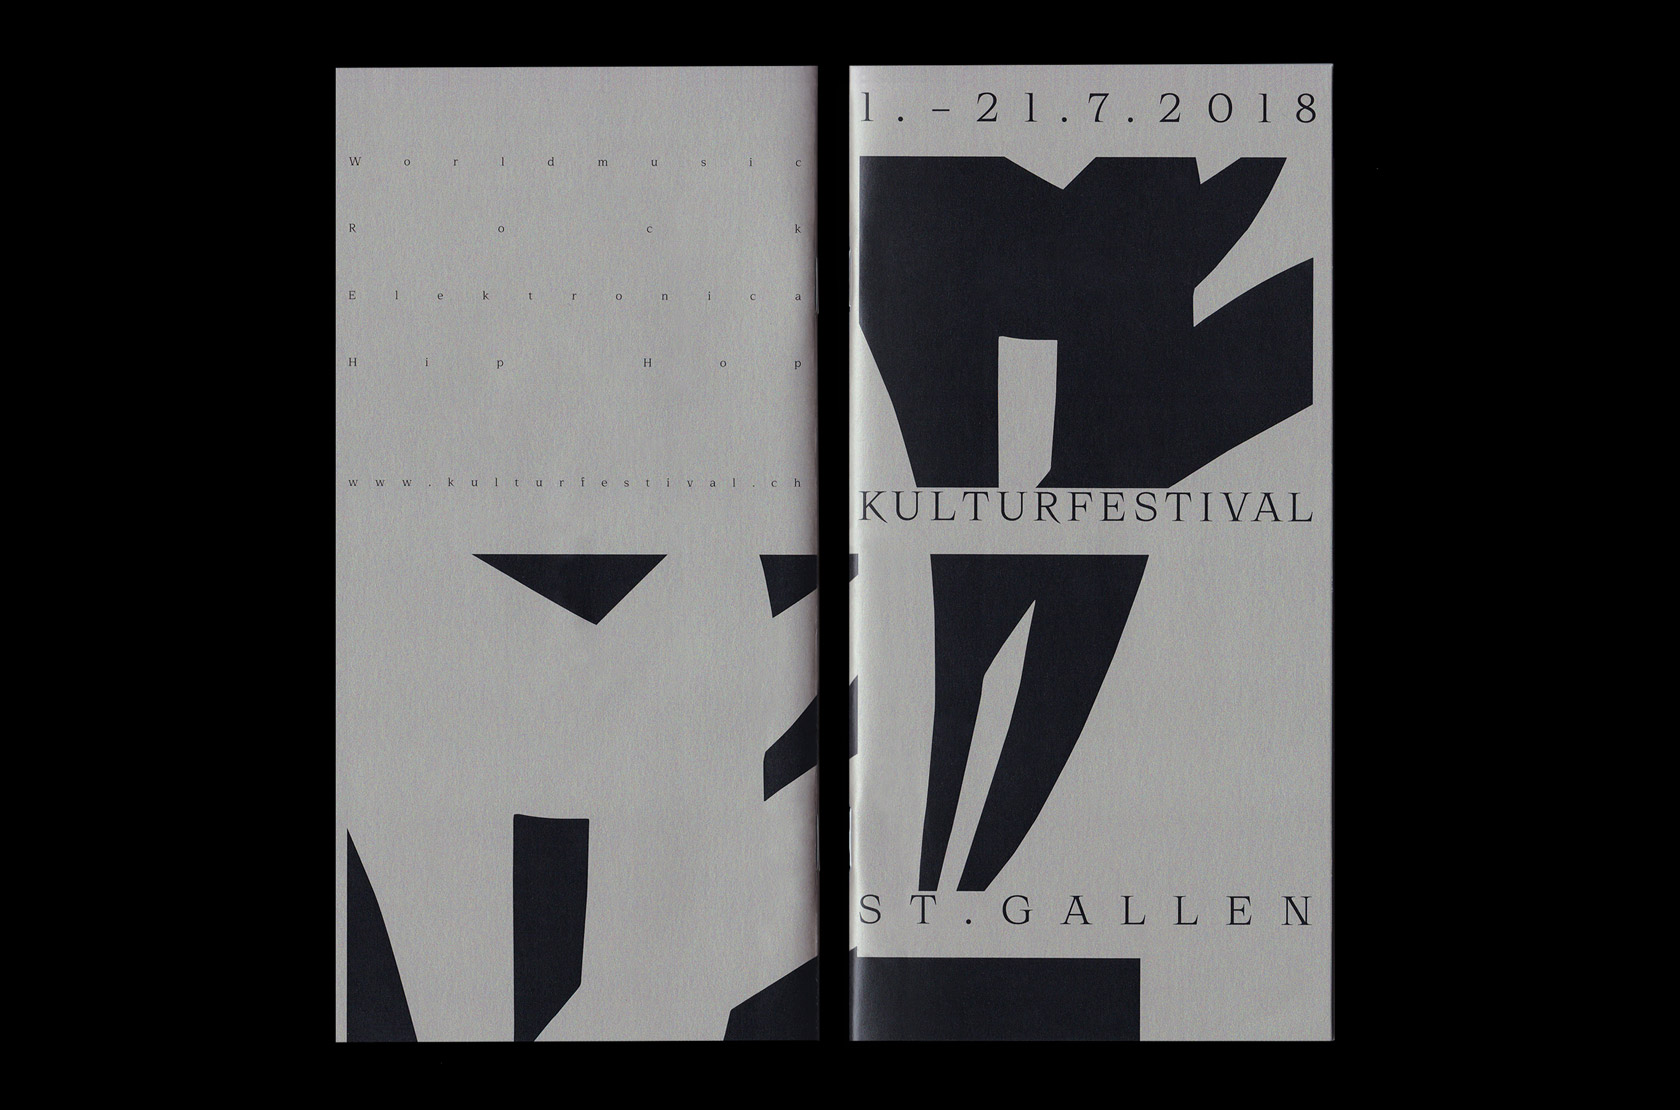 collide24 2 kulturfestival st gallen - combining graphic design with musical and cultural roots